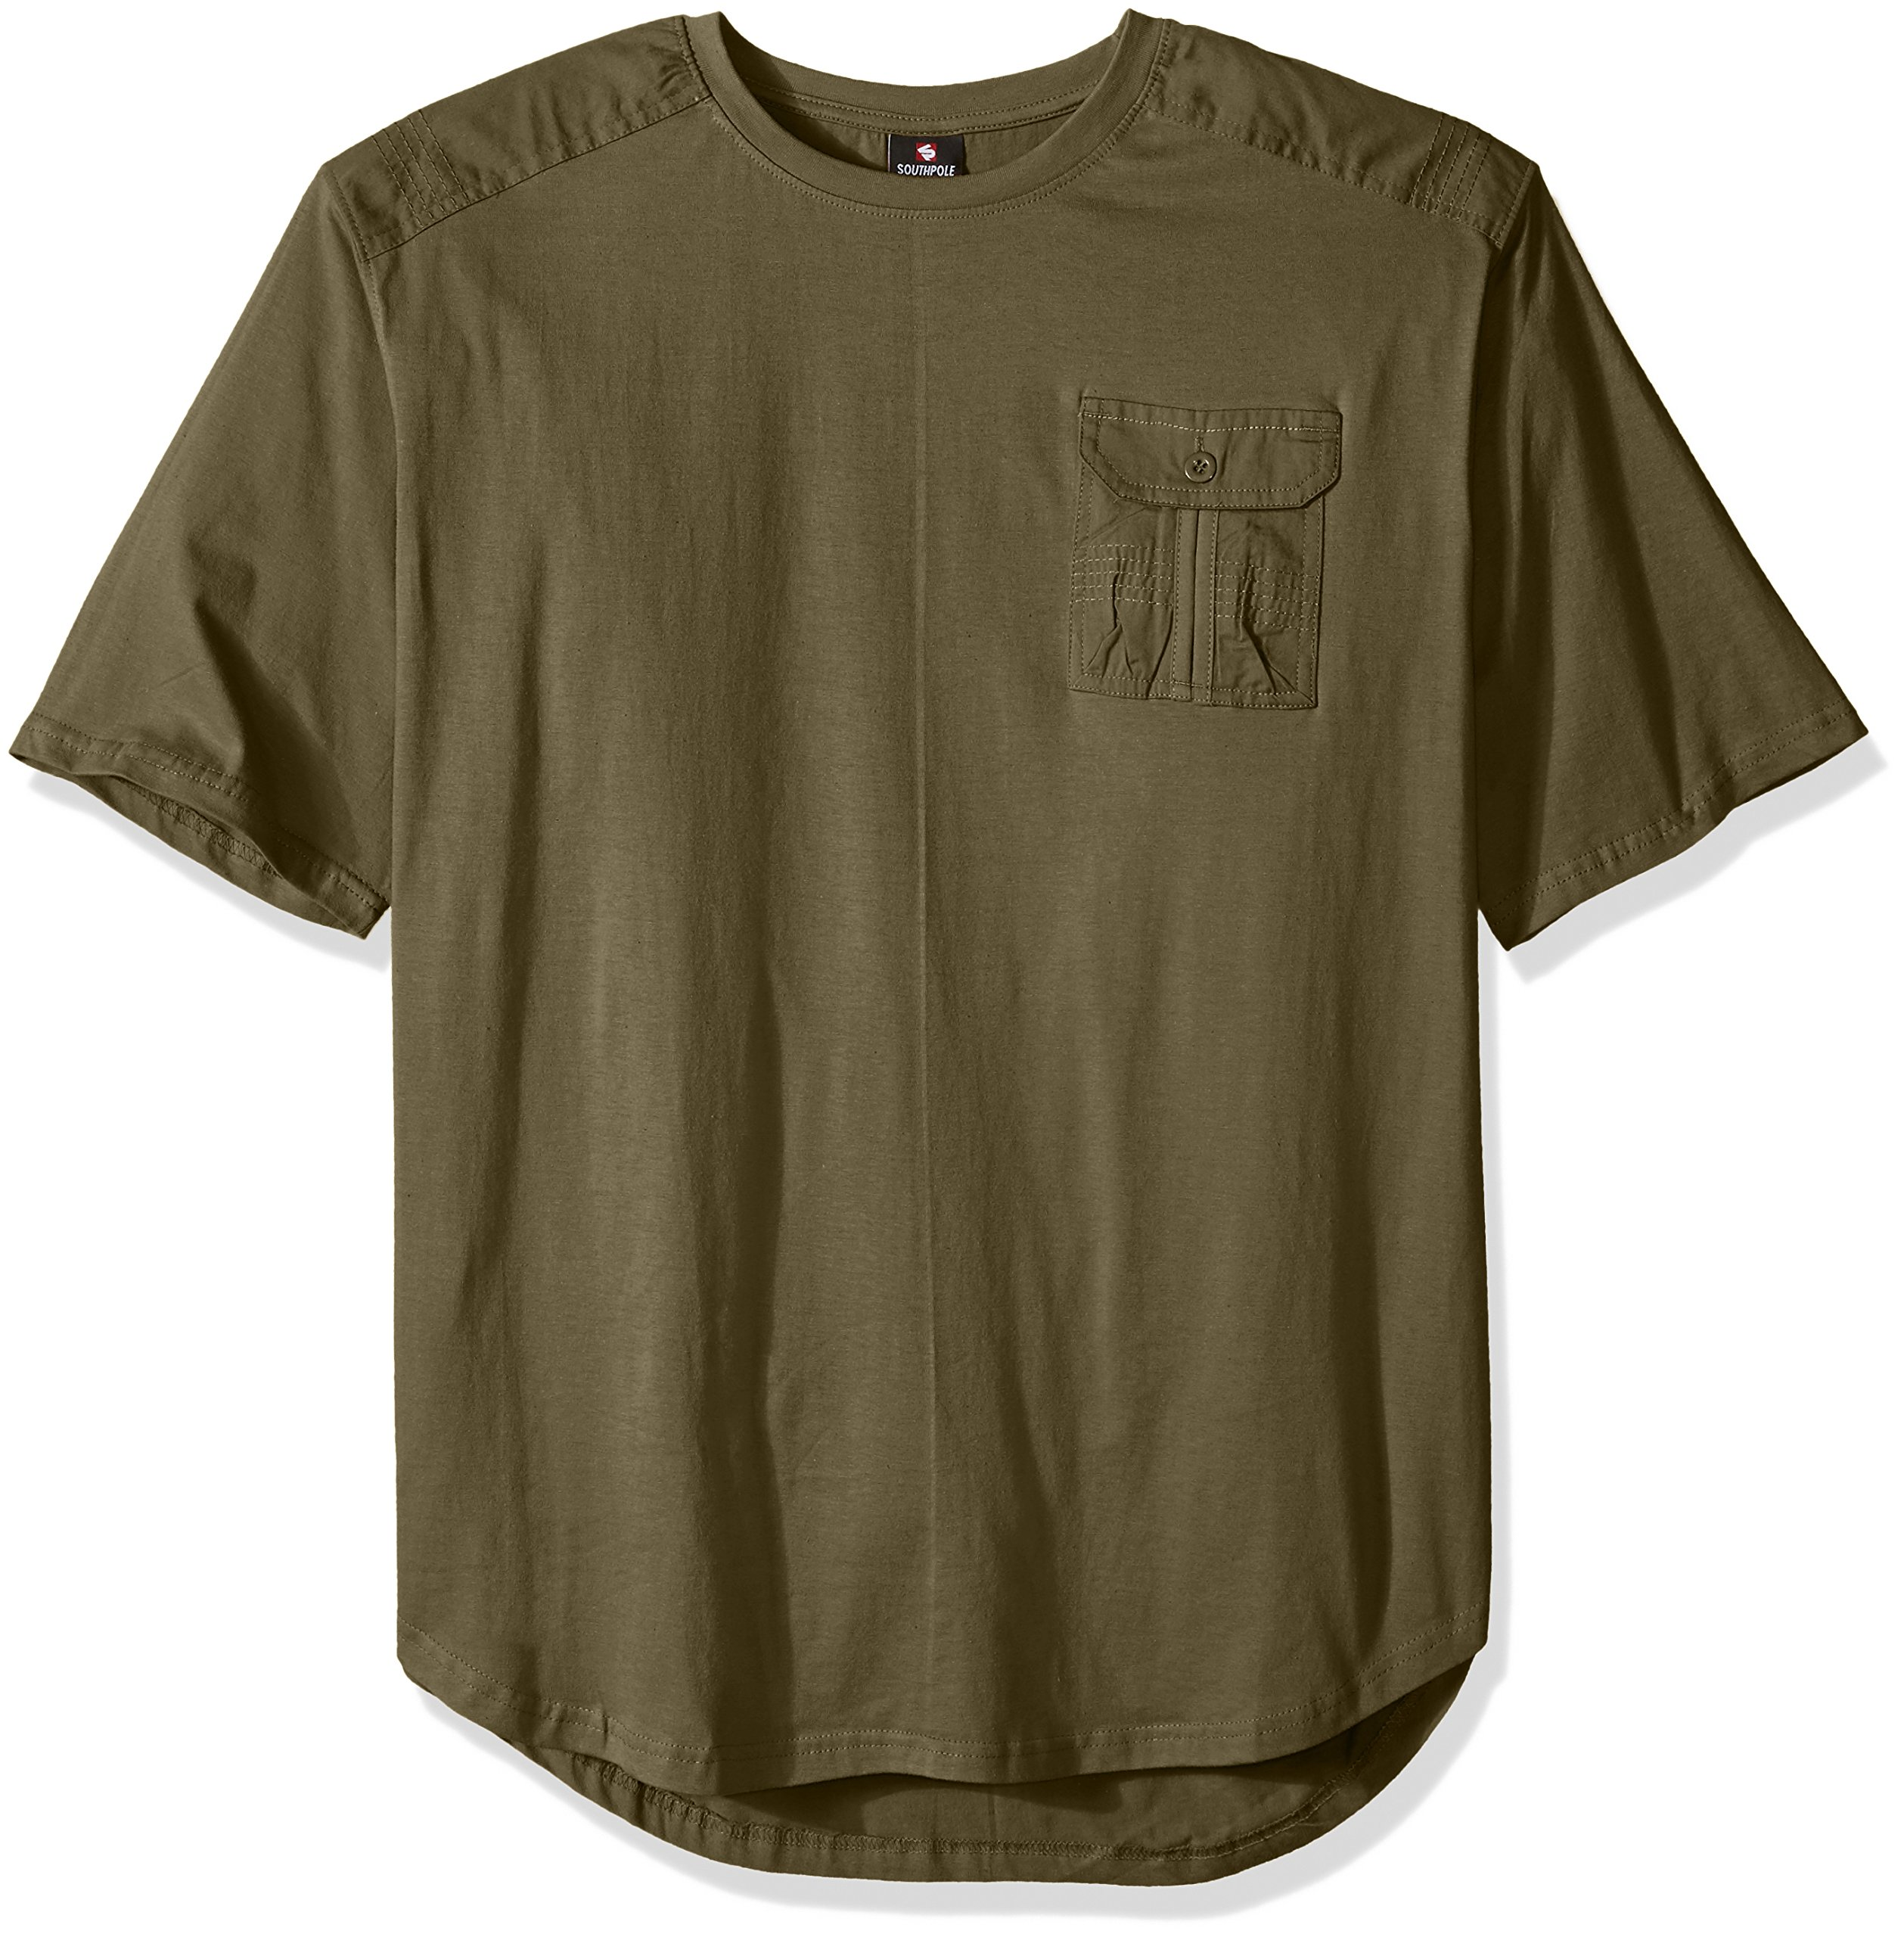 Southpole Men's Big and Tall Short Sleeve Scallop Tee with Fine Twill Detail, Olive, 5XB